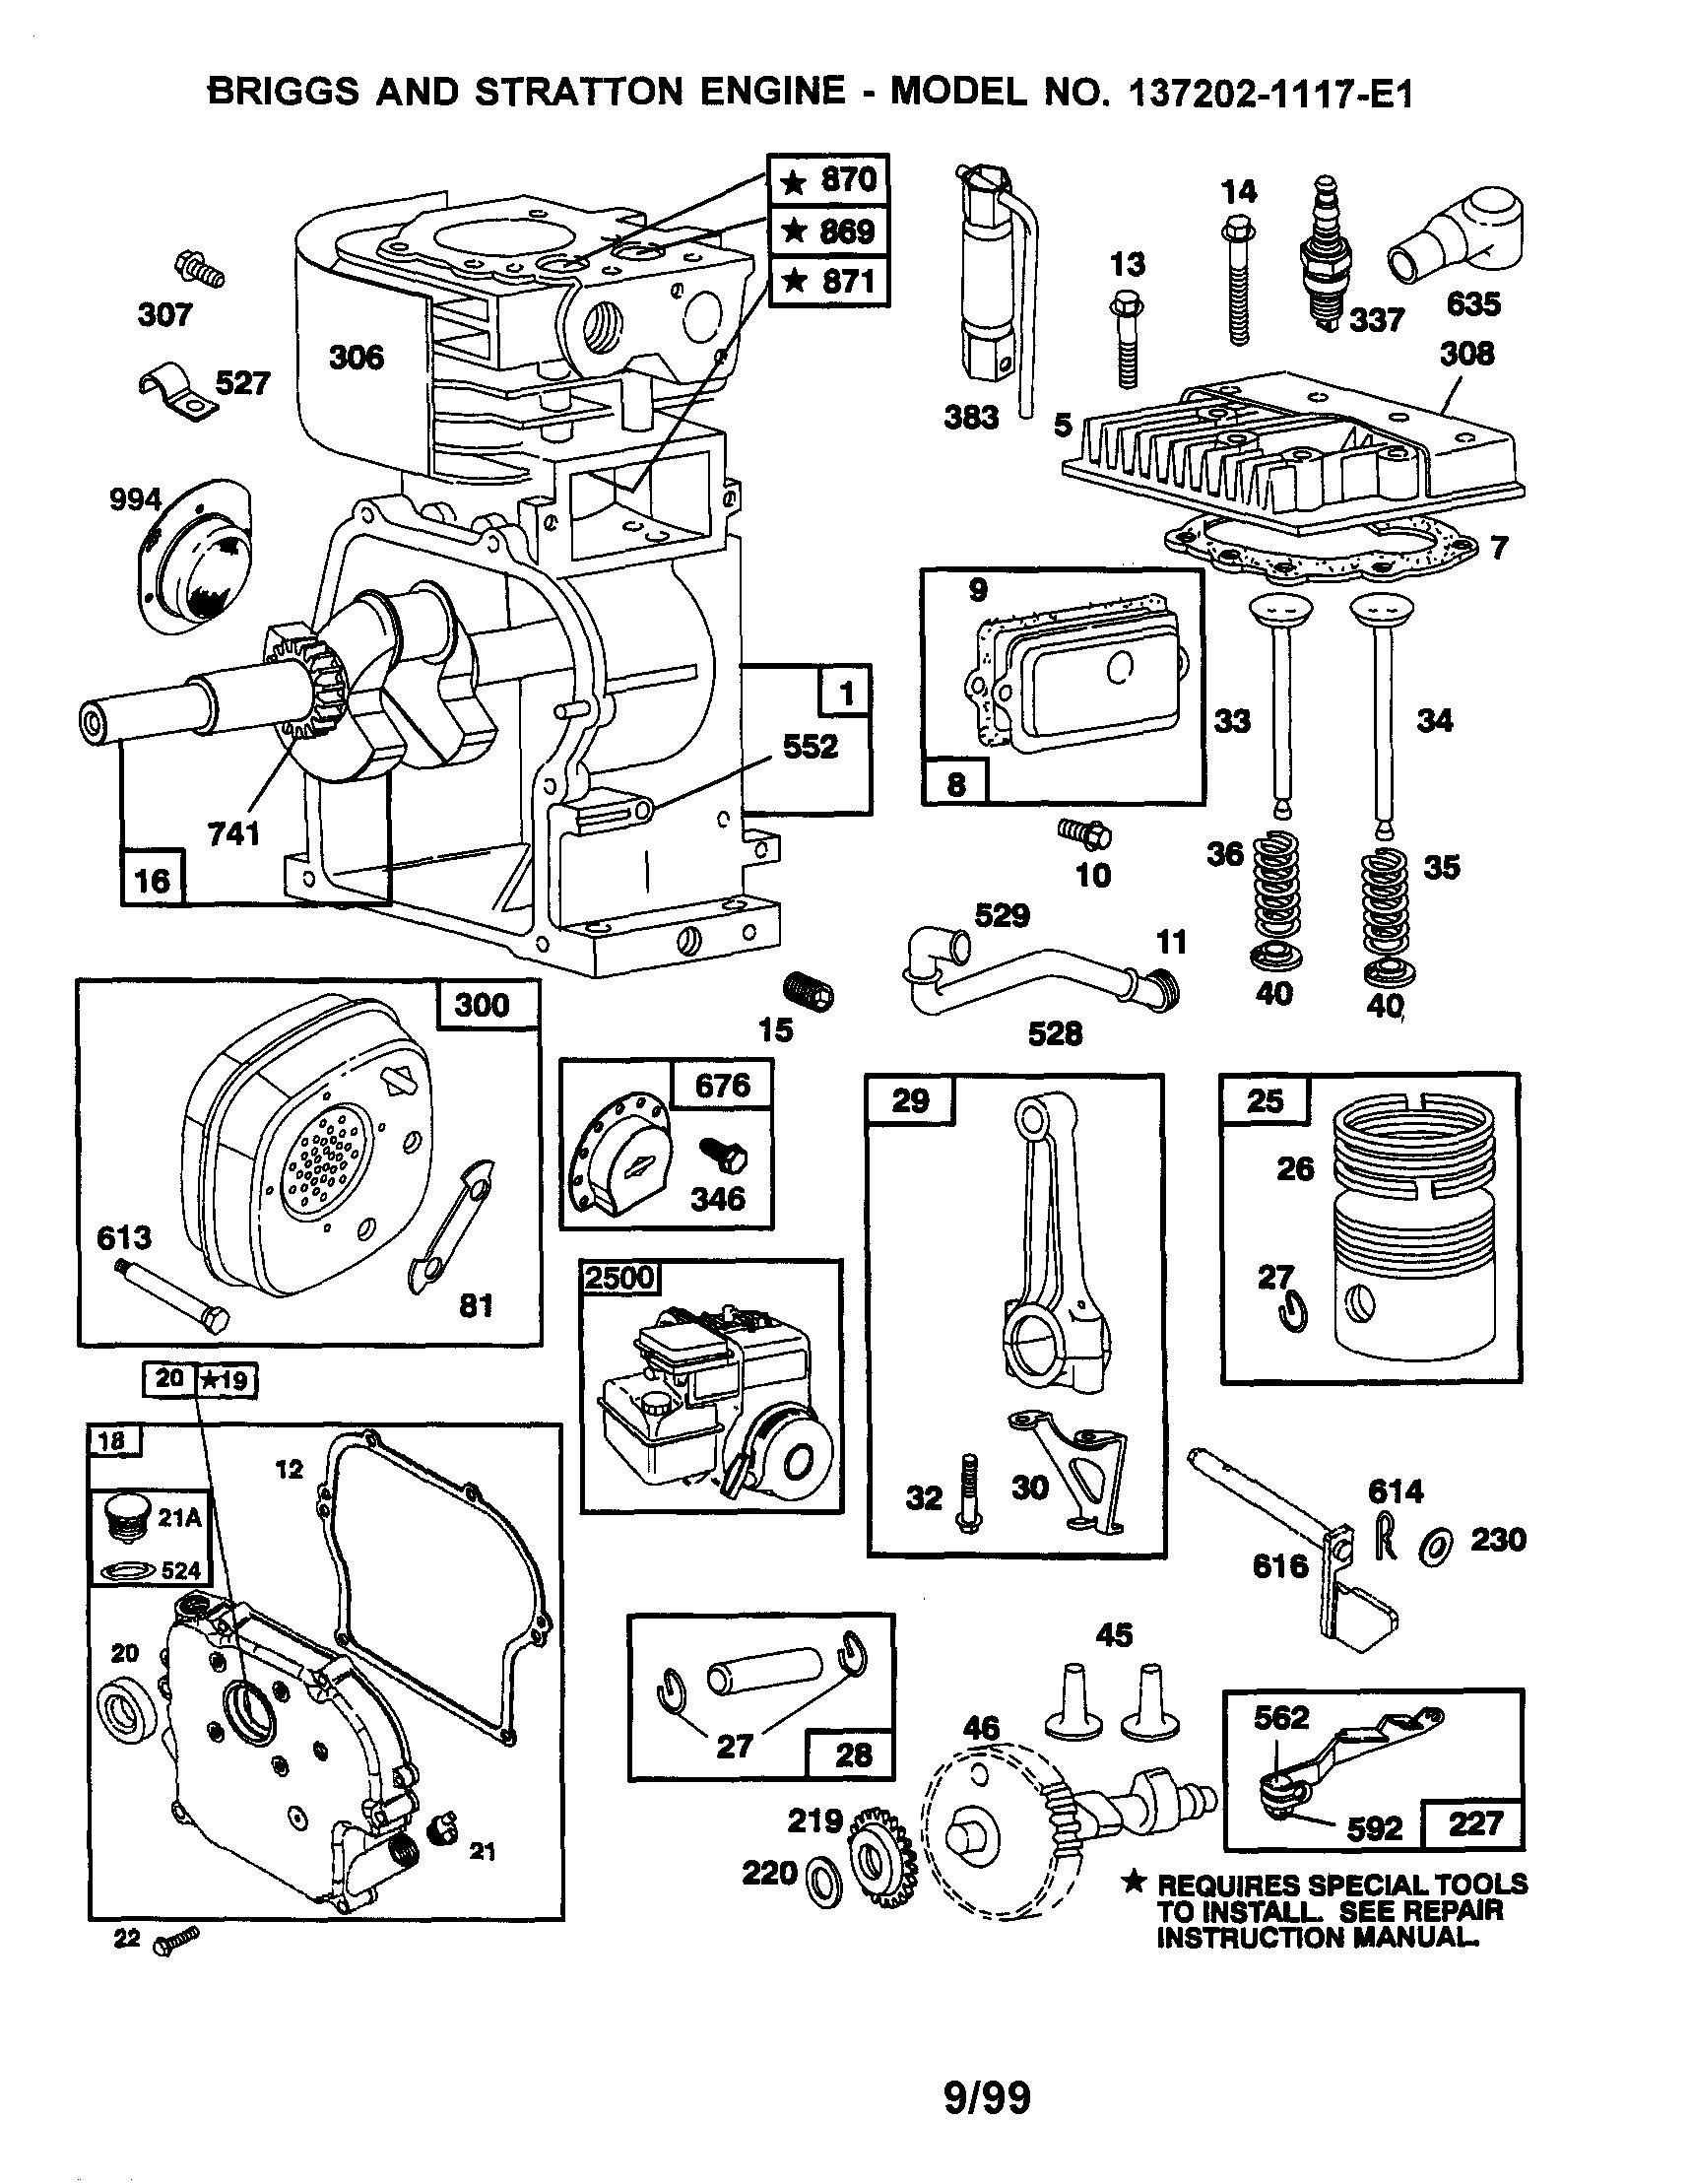 Briggs and Stratton Wiring Diagram 12 Hp Wiring Diagram Pdf 12 Hp Briggs and Stratton Engine Diagram Wiring Of Briggs and Stratton Wiring Diagram 12 Hp